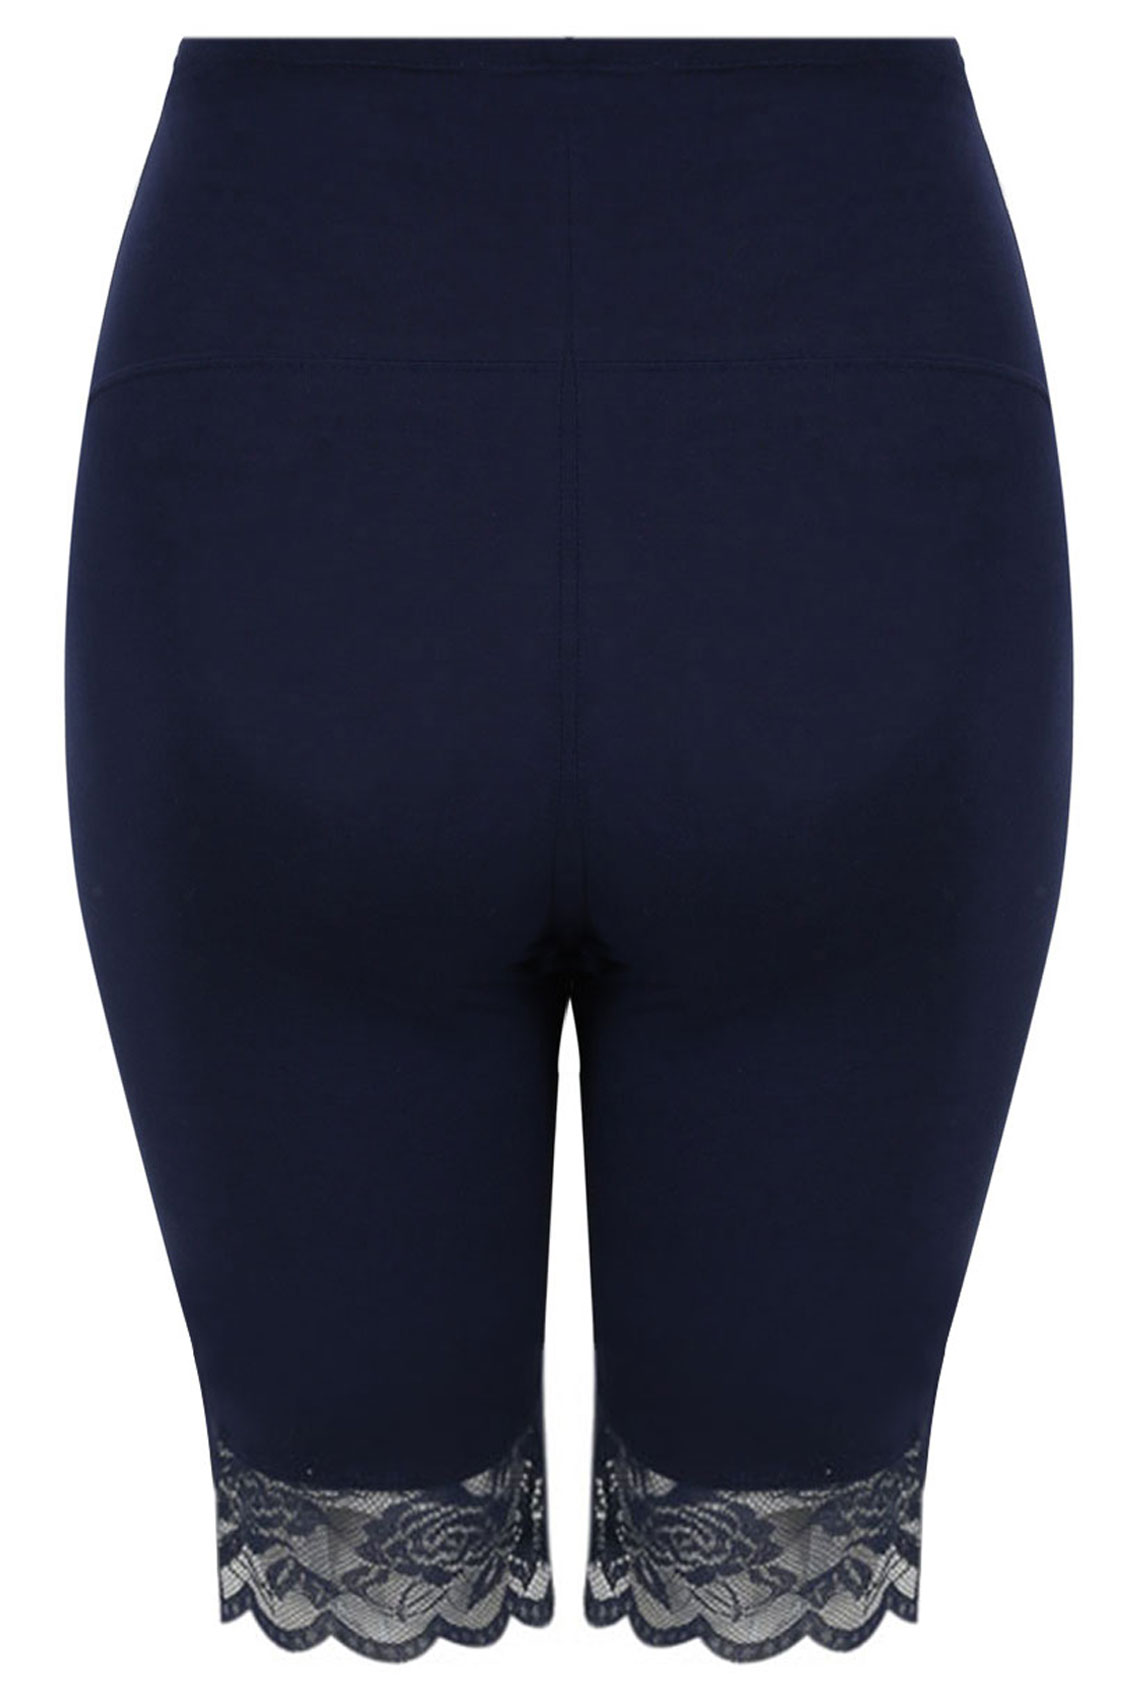 Bump It Up Maternity Navy Cotton Elastane Legging Shorts